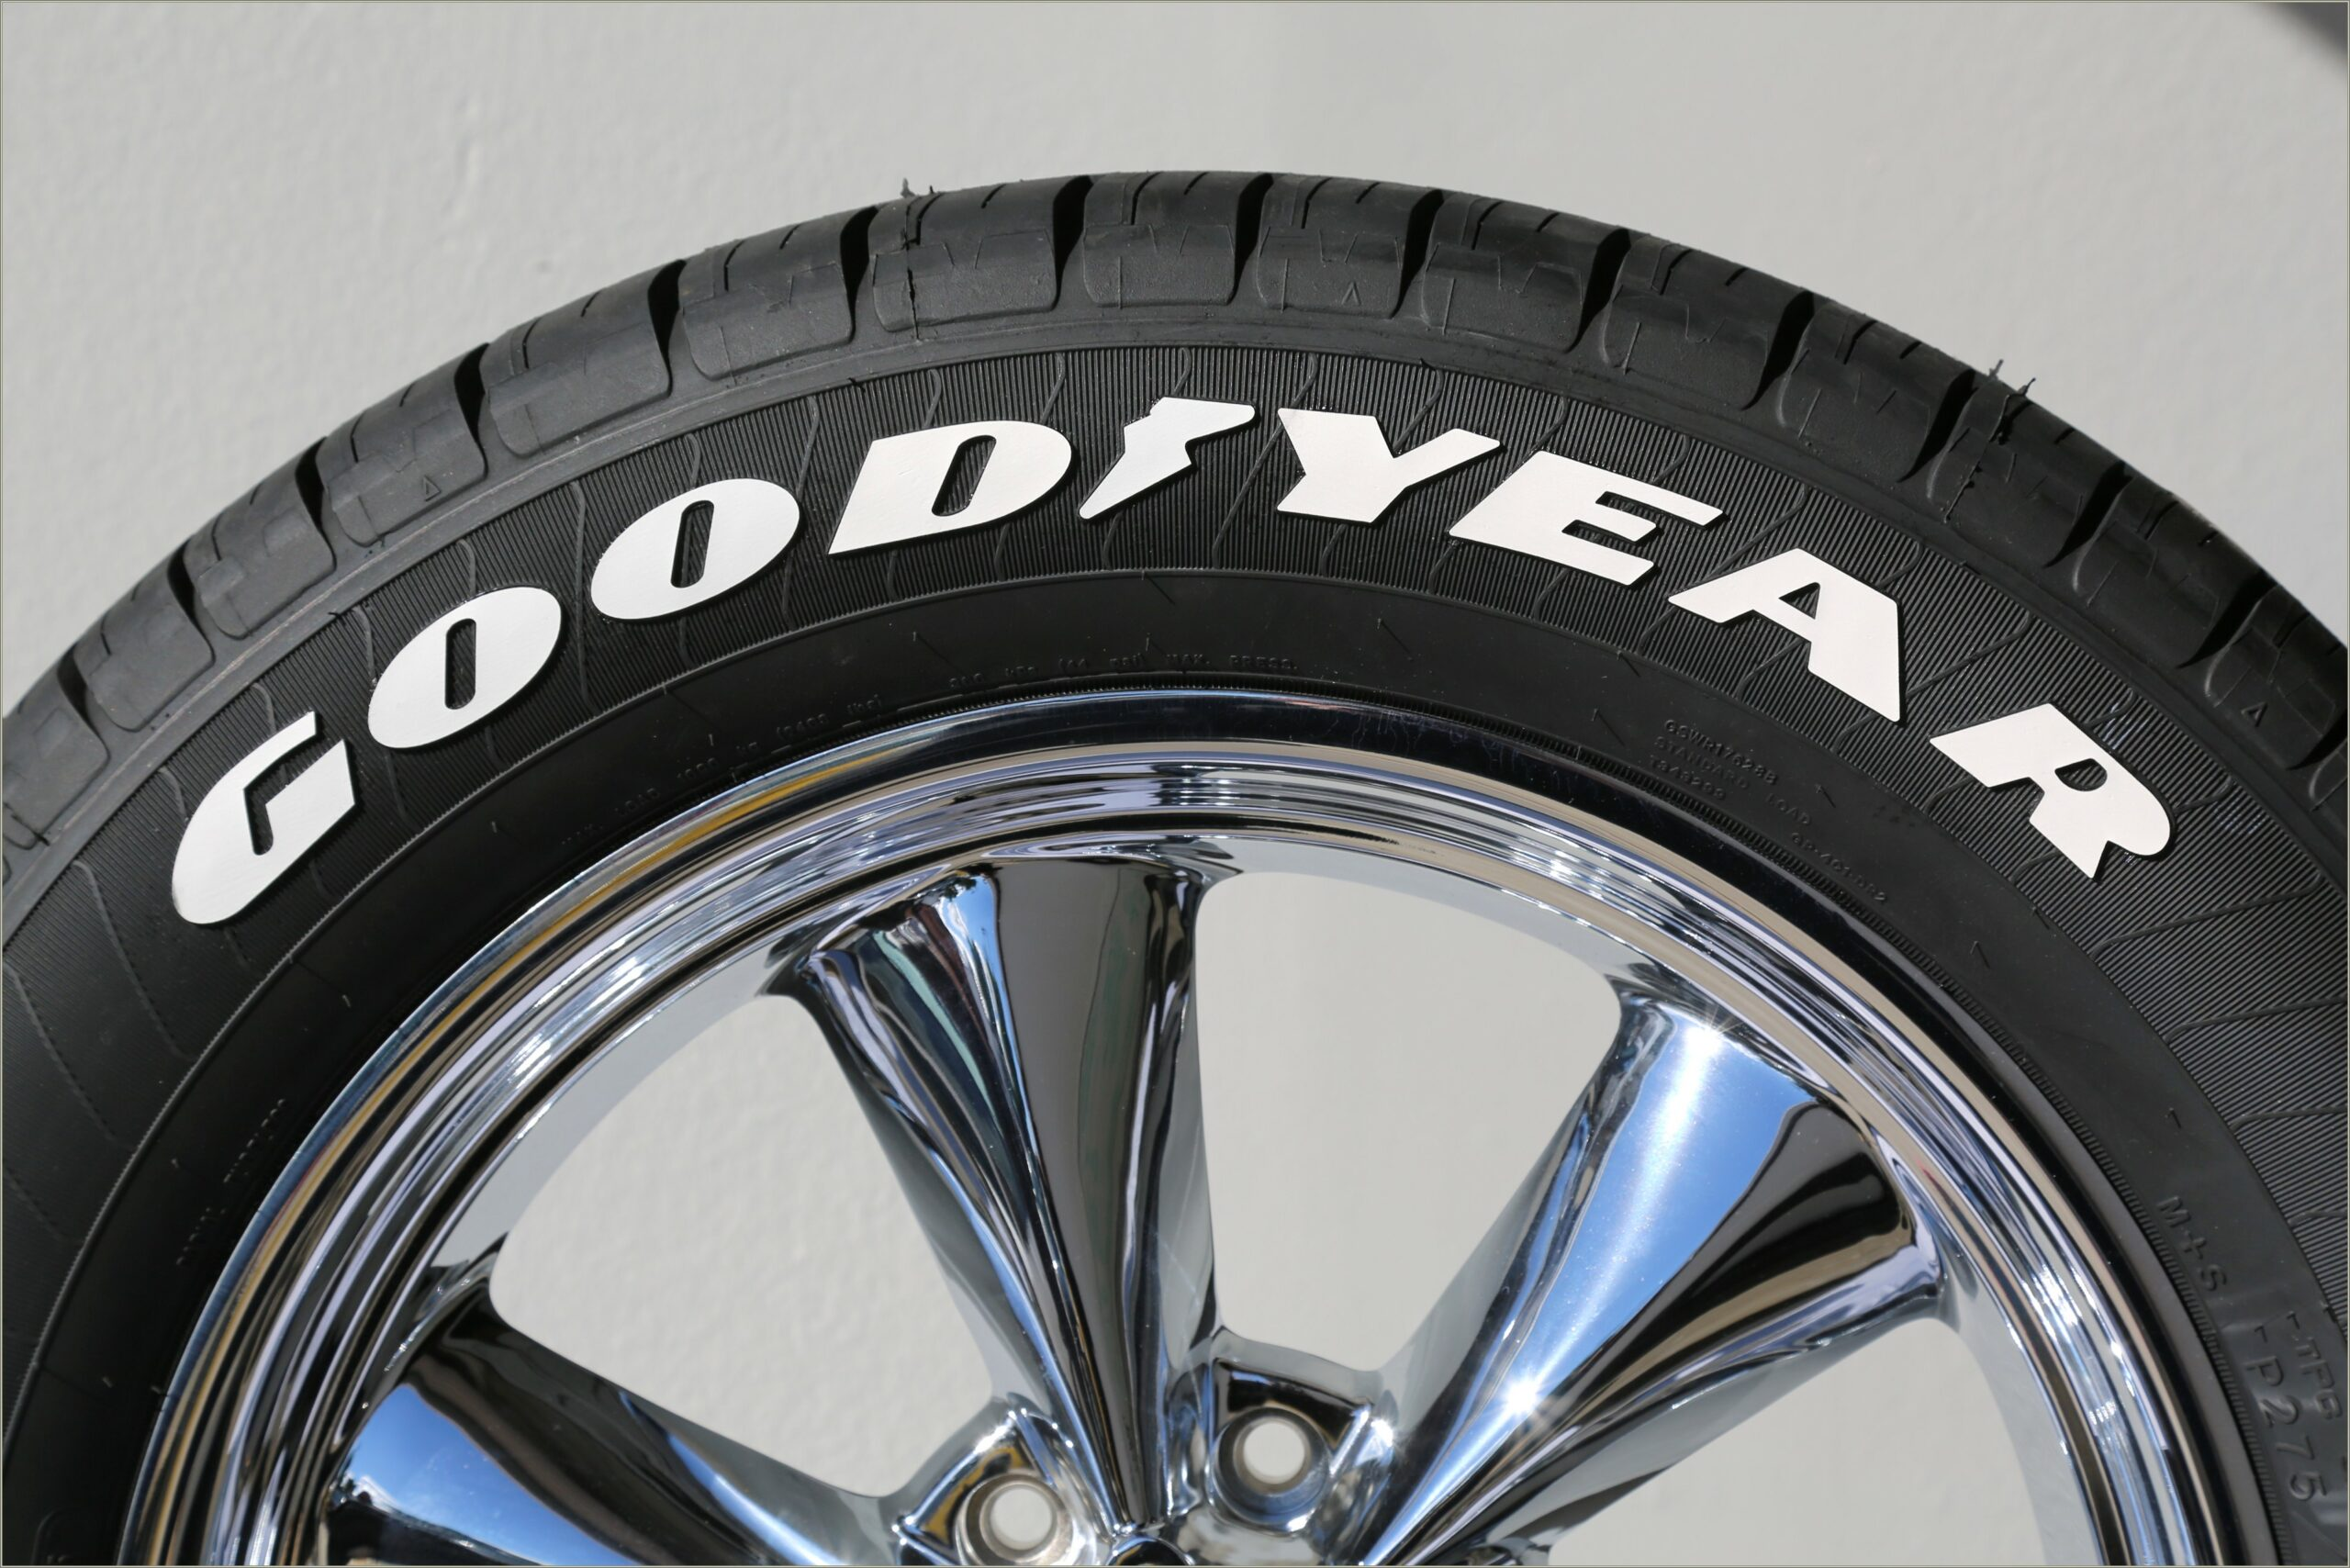 Goodyear White Letter Tires Stickers